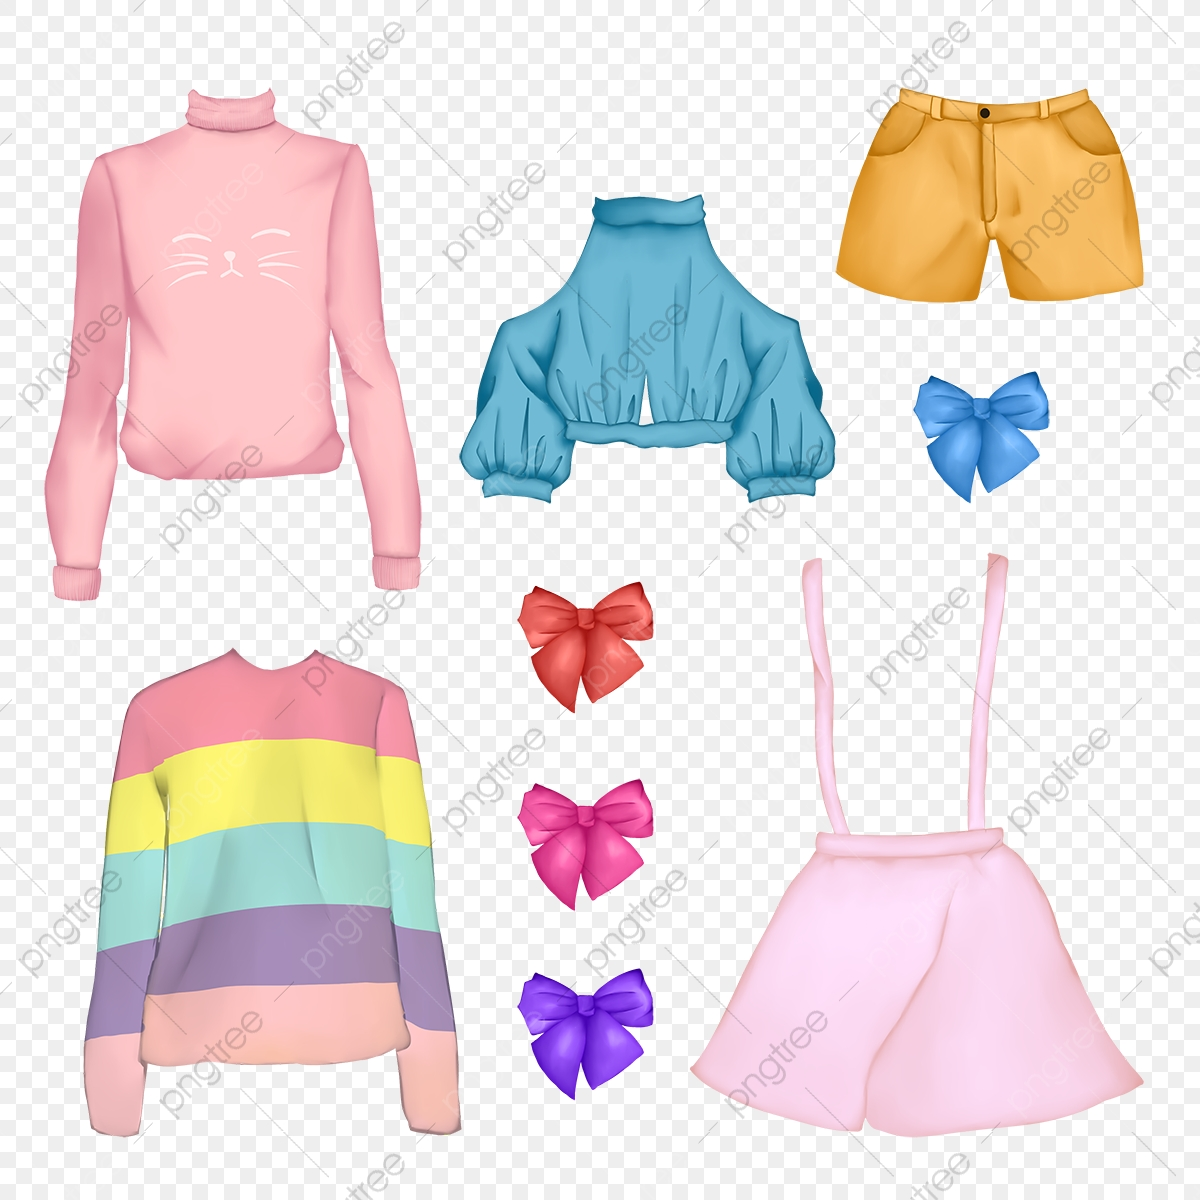 Kawaii Cute Fashion Clothes Japanese Korean Style Pack Cute Kawaii Png Transparent Clipart Image And Psd File For Free Download